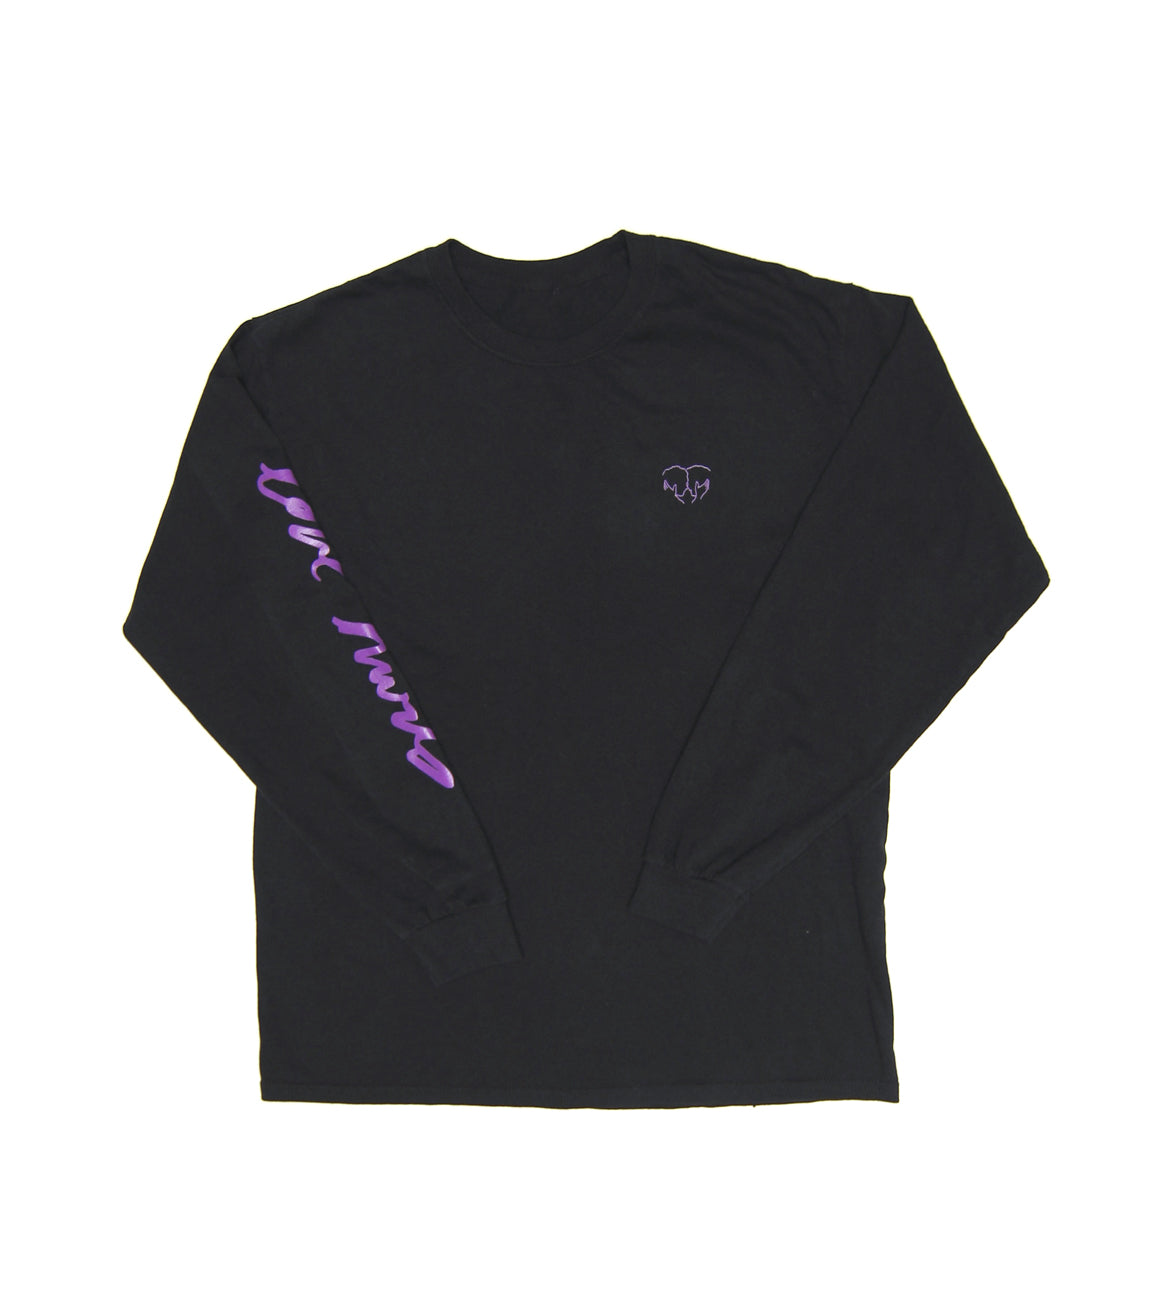 LOVE HURTS LONG SLEEVE BLACK TEE